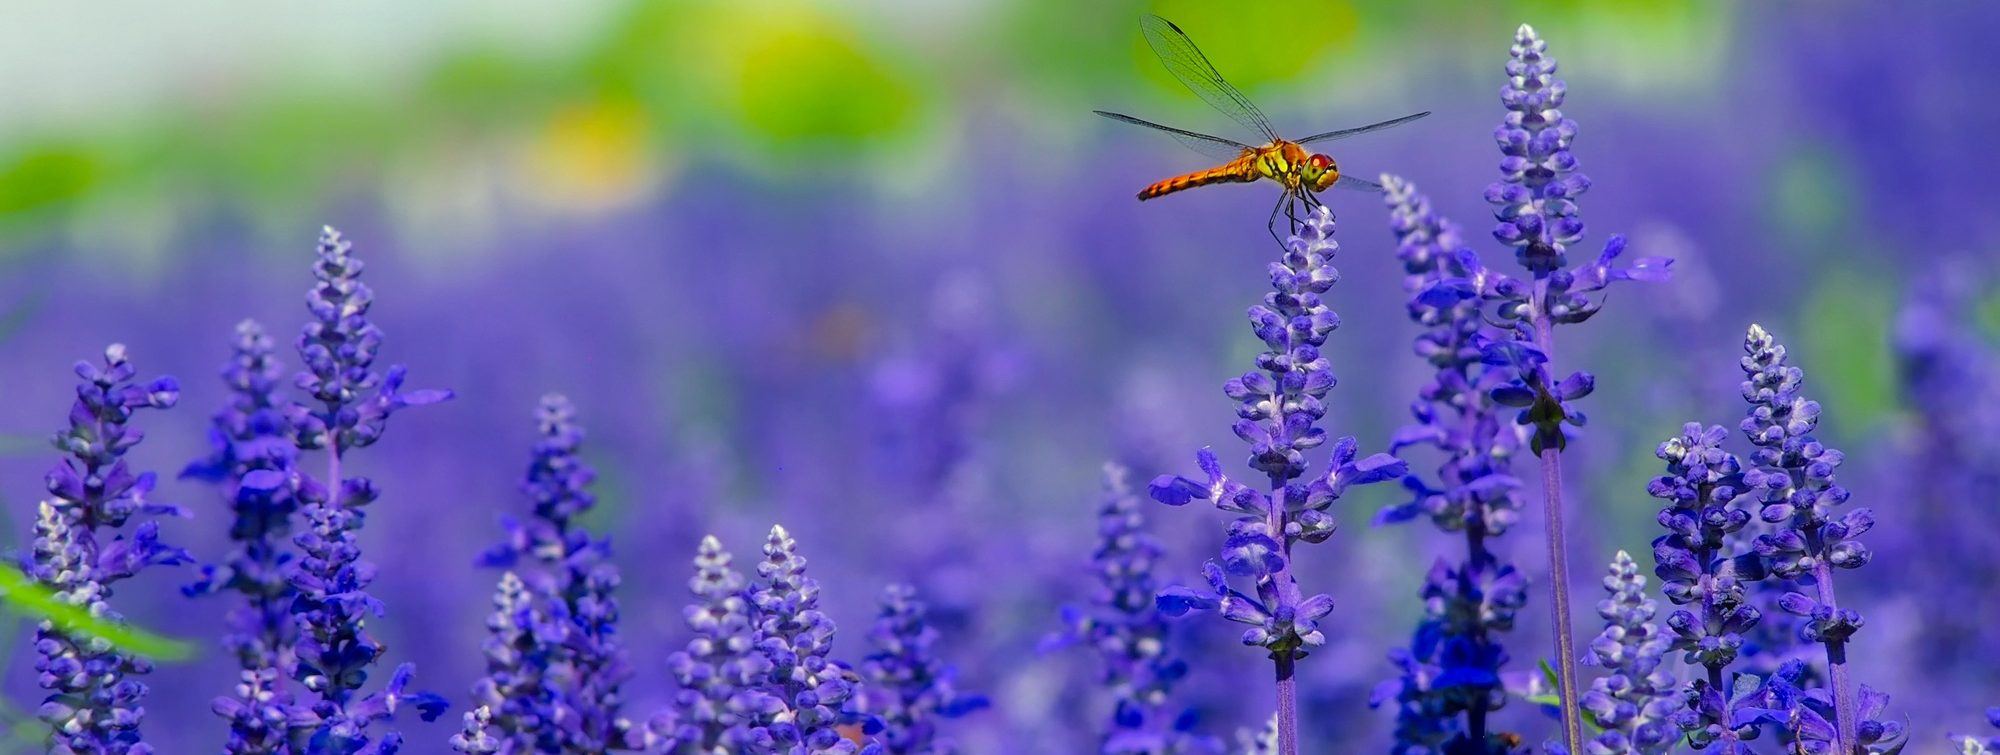 Dragonfly-Lavender-The-Beauty-of-Now-Become-The-Creator-of-your-life